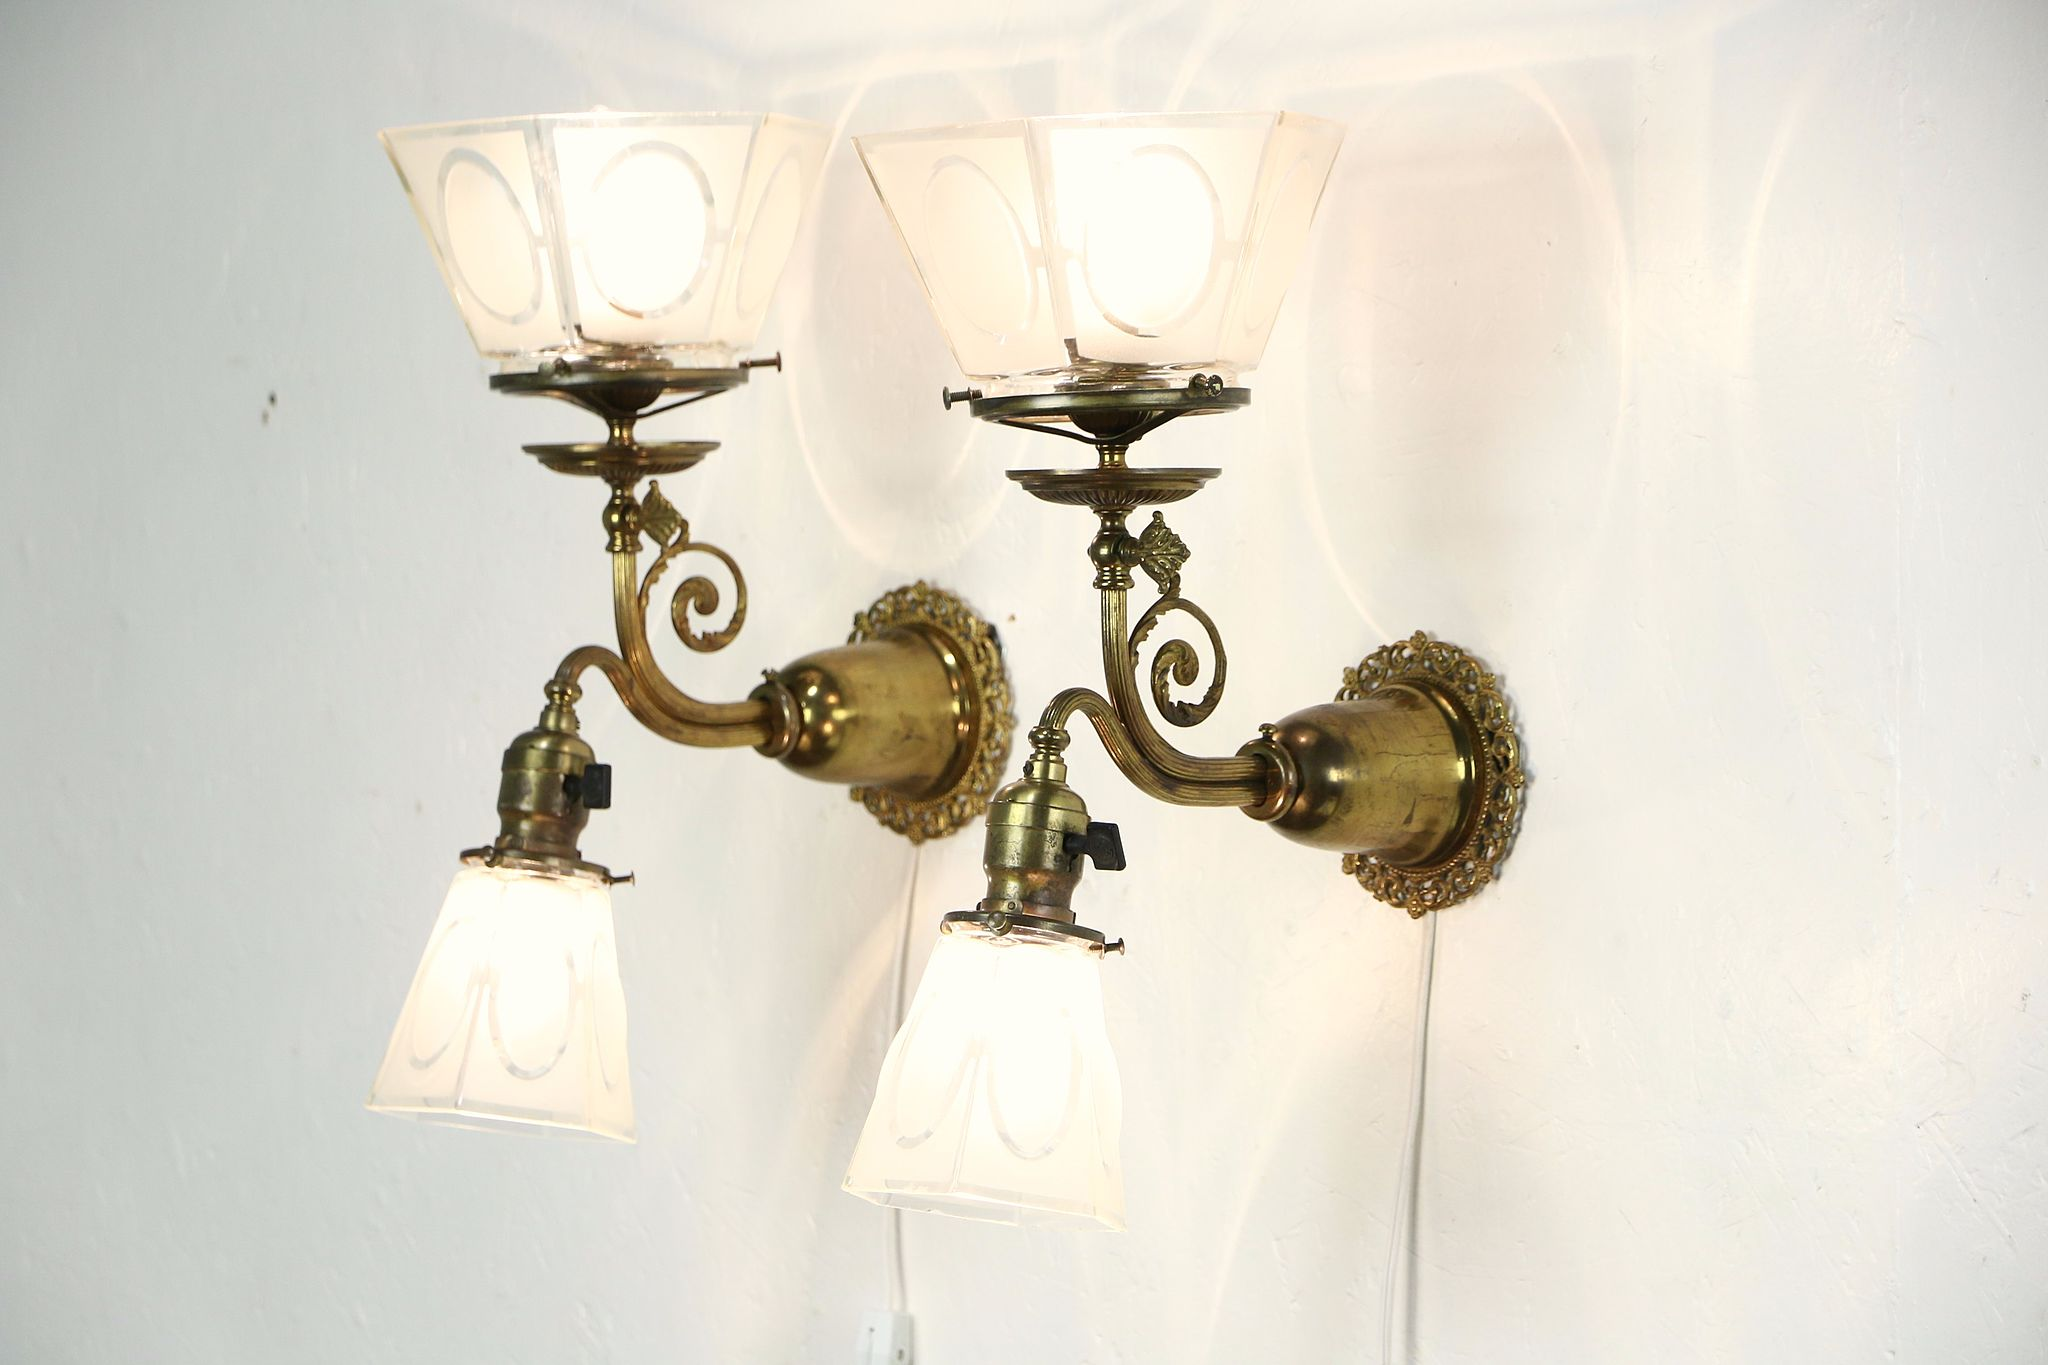 Brass Pair Of Antique Wall Sconce Lights Gas Electric Etched Shades